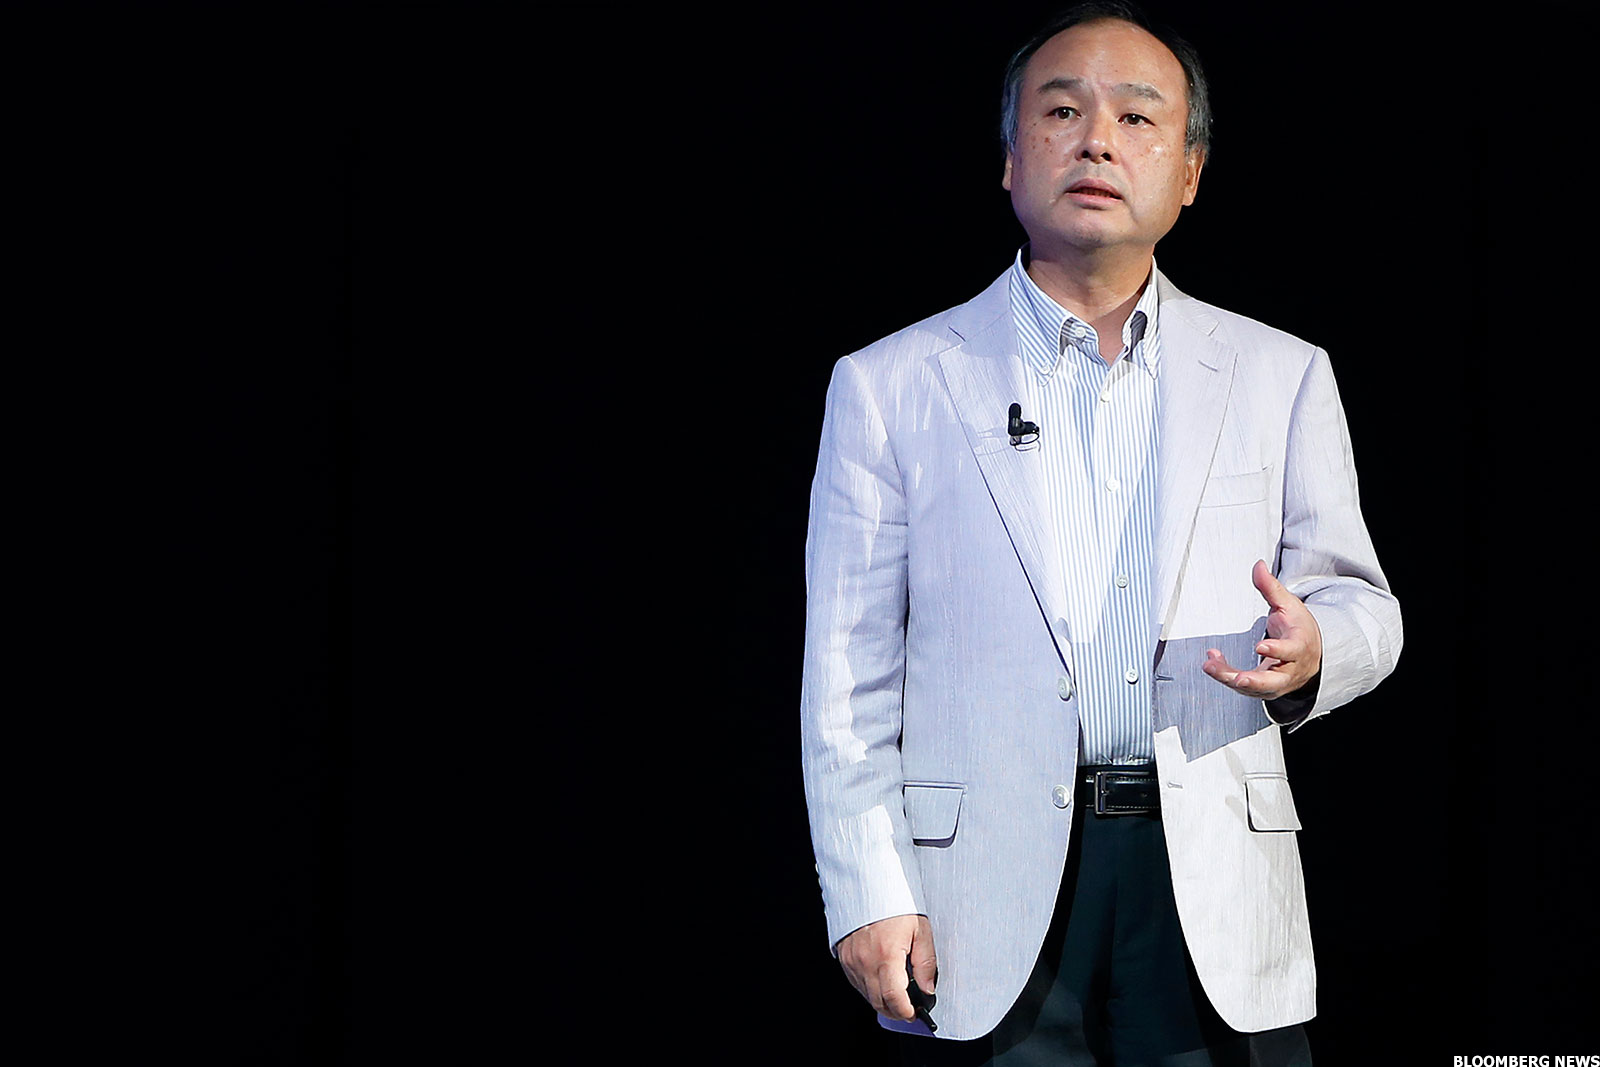 Softbank CEO, Masayoshi Son.